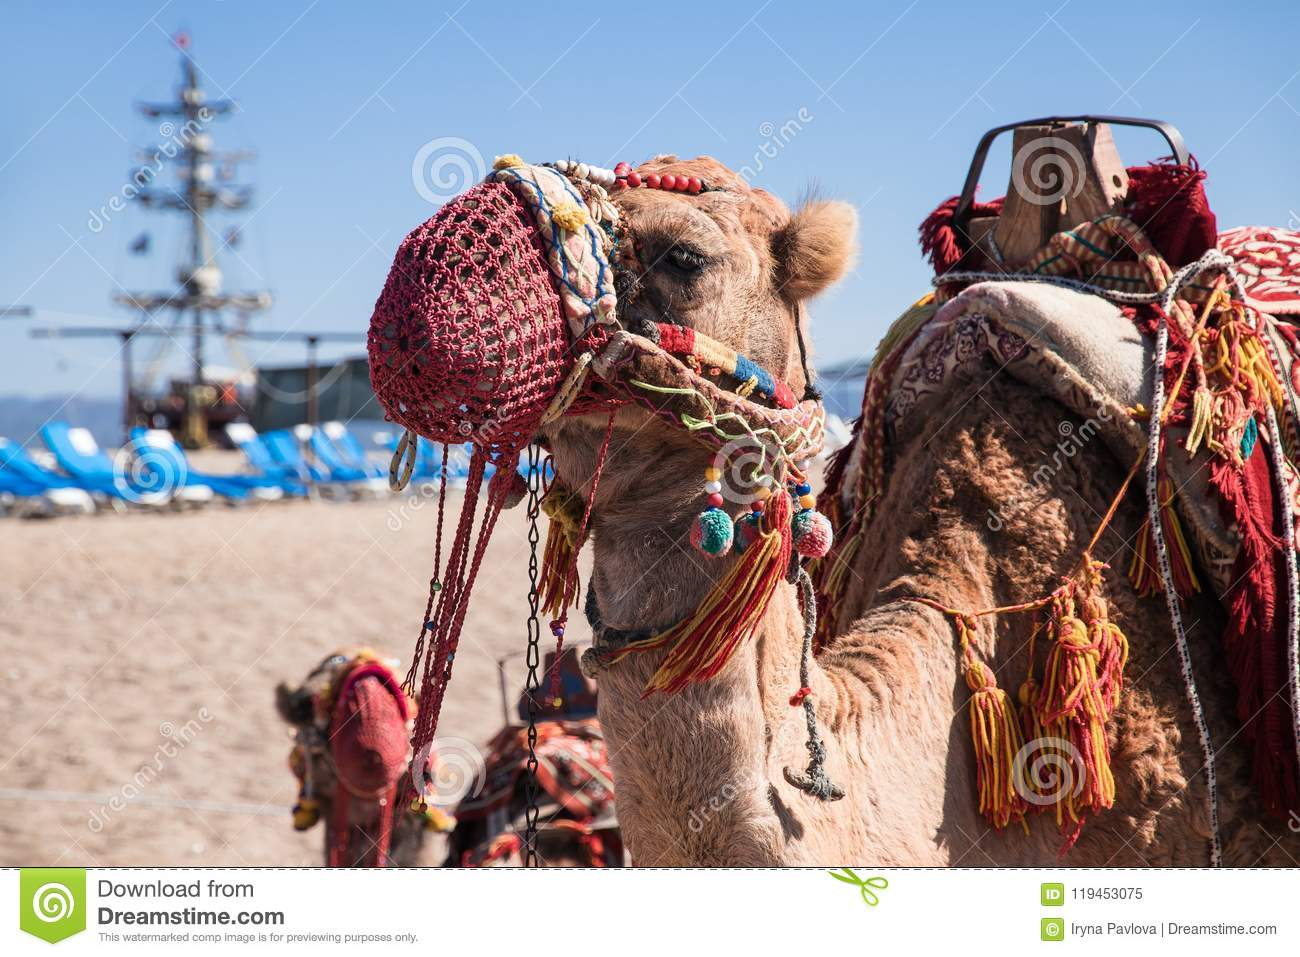 Camel, decorated with brushes and ornaments in national style